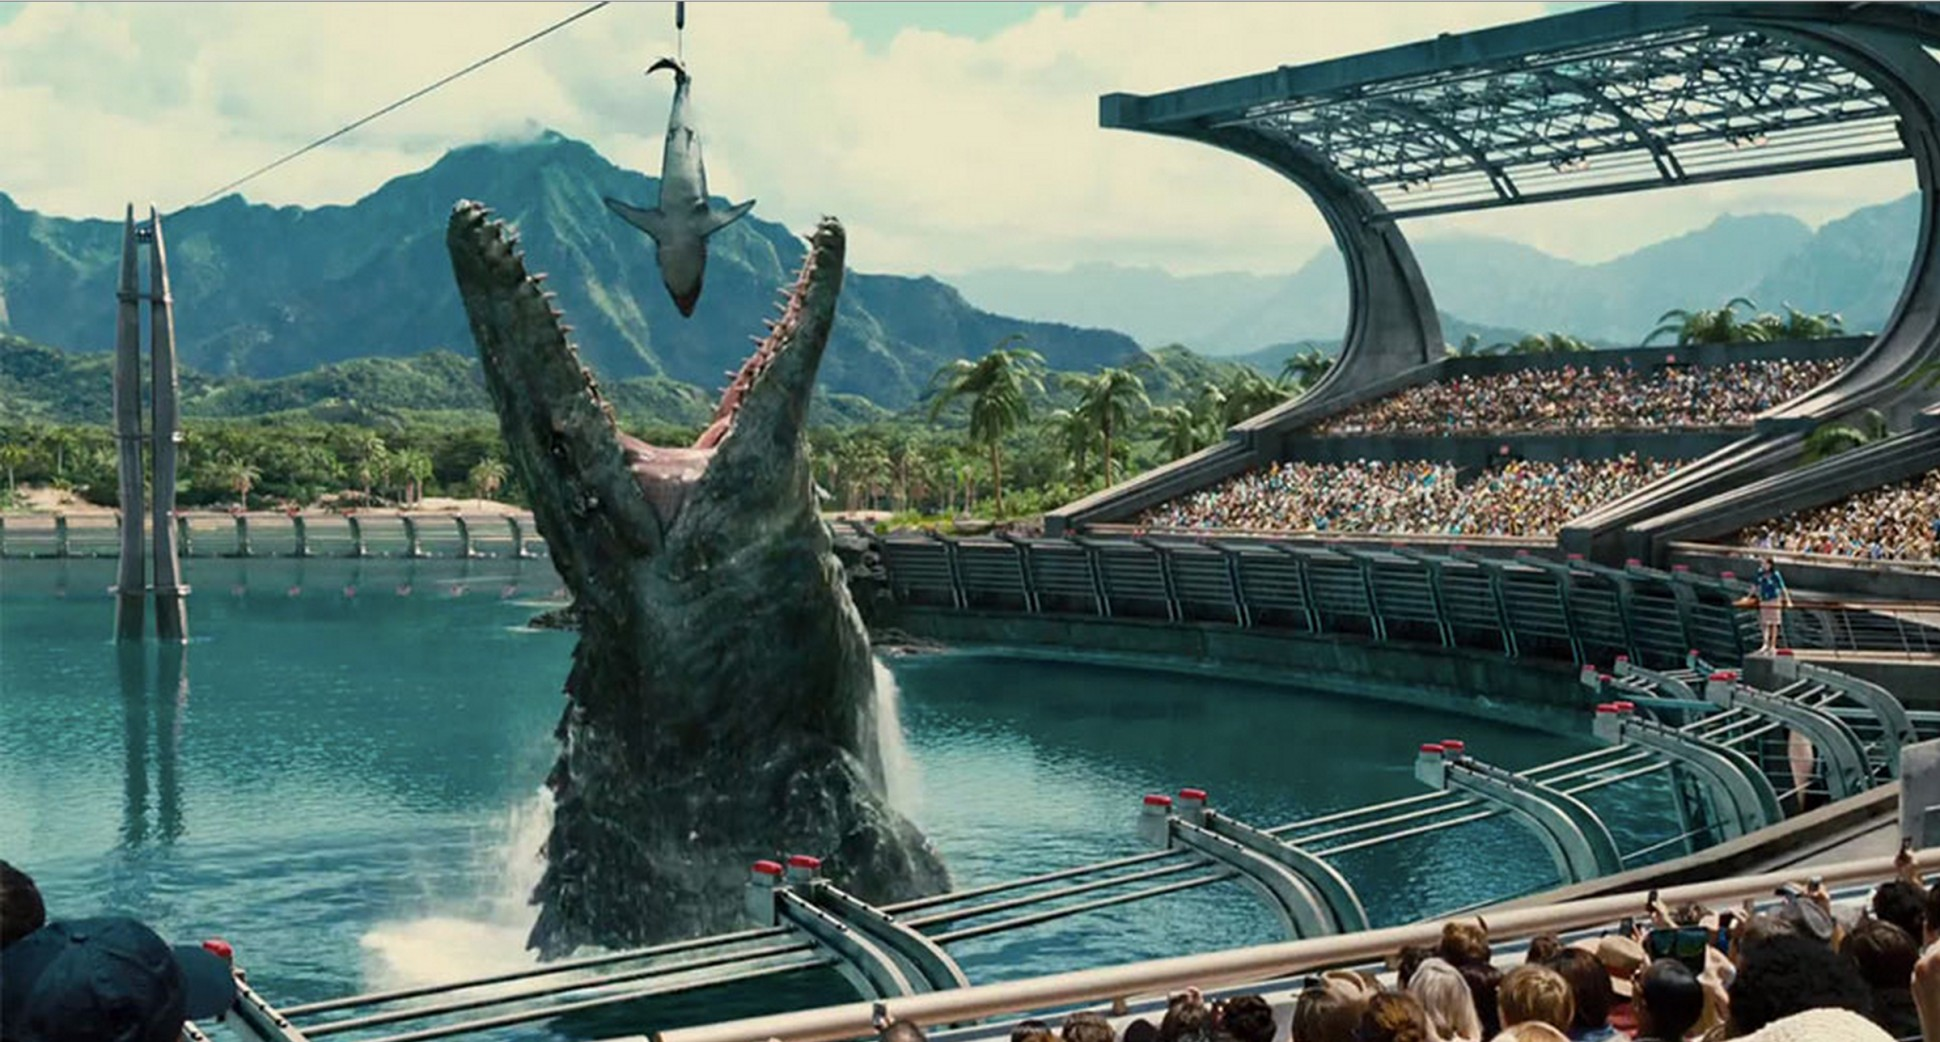 Here's a visual representation of 2018's other summer releases being fed to Jurassic World 2